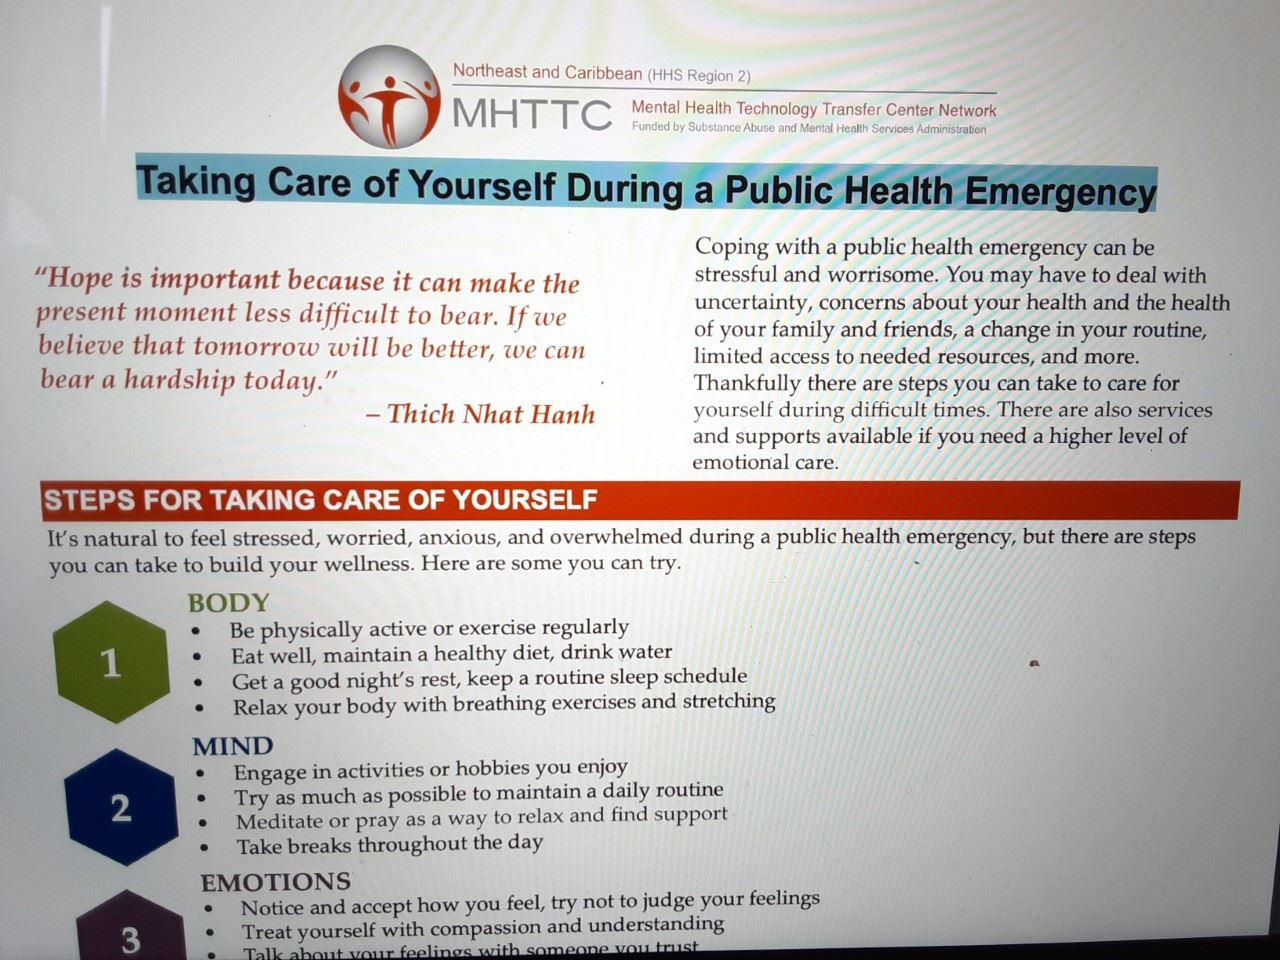 Taking Care of Yourself During a Public Health Emergency